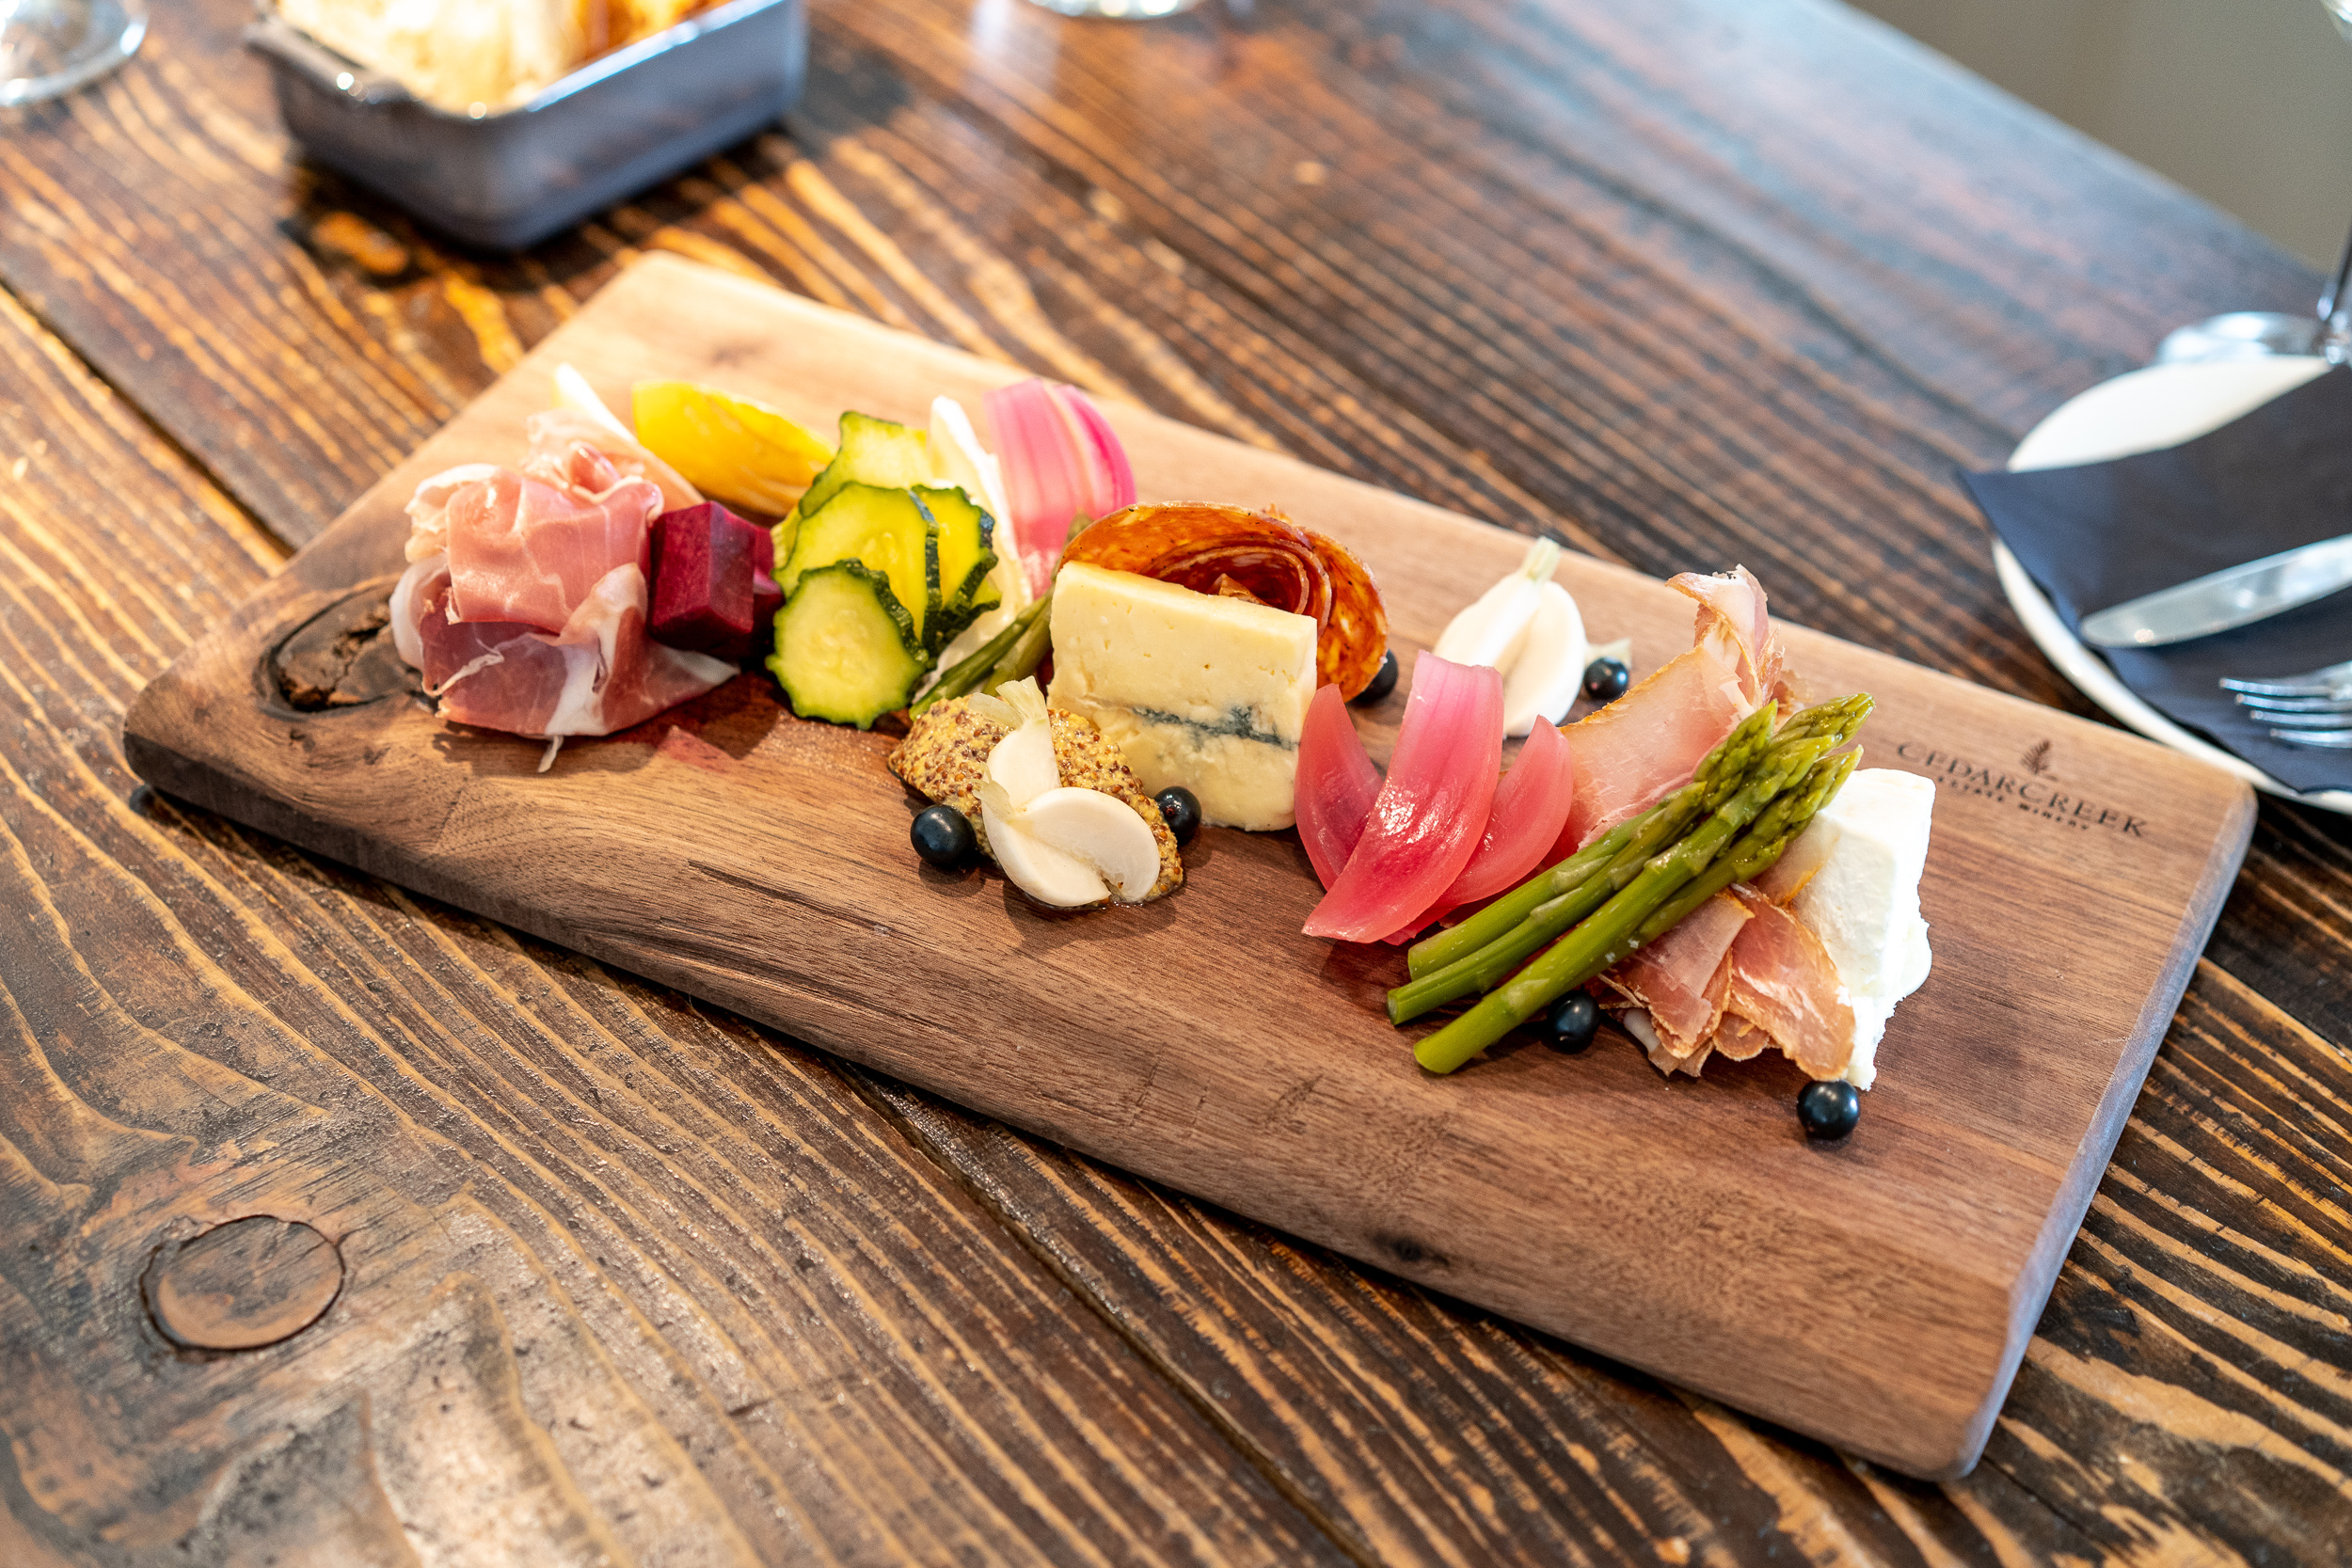 Charcuterie platter to go with our wine tasting experience.